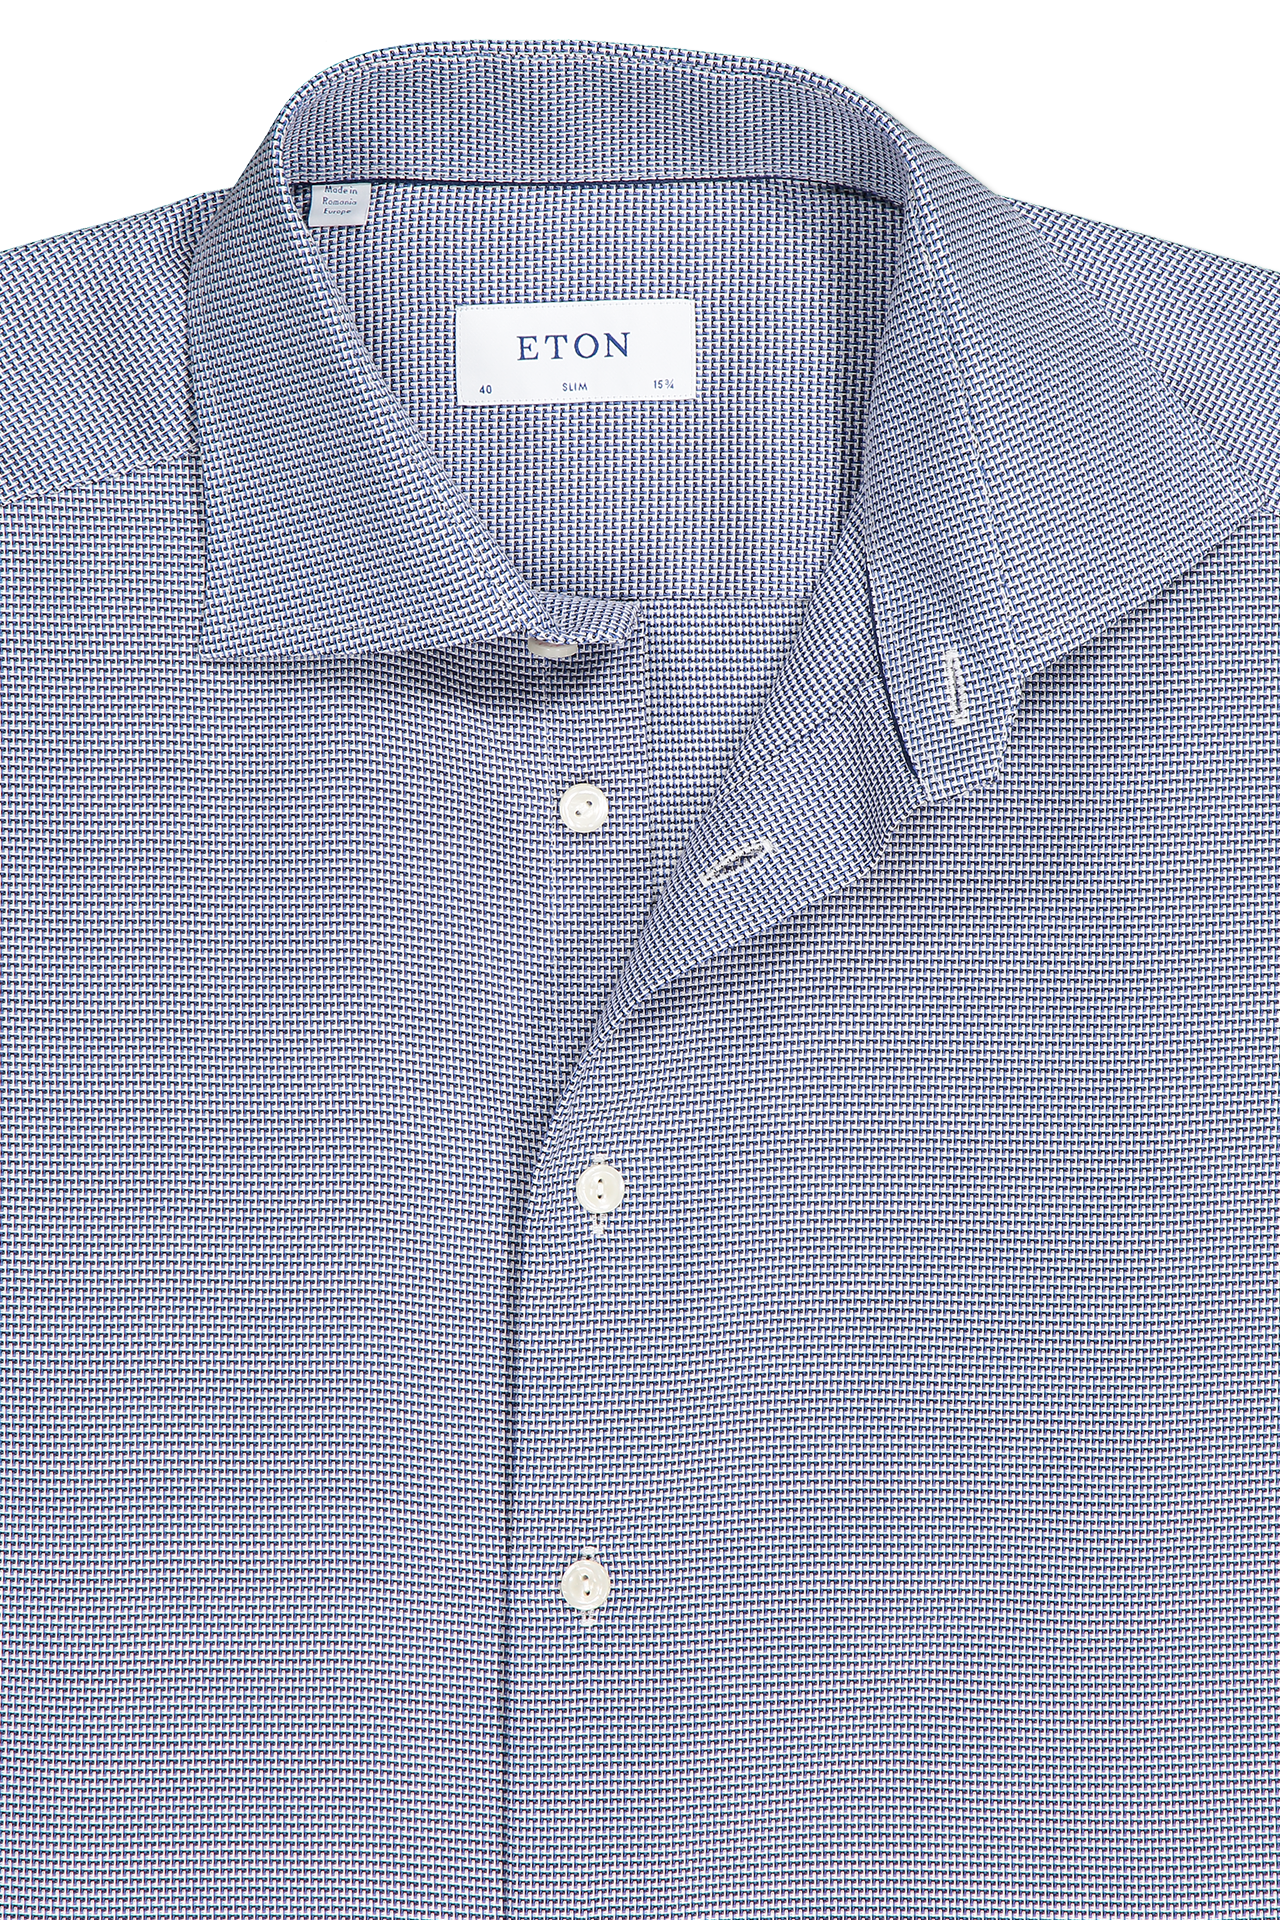 Front collar detail image of Eton Slim Fit Textured Solid Woven Blue